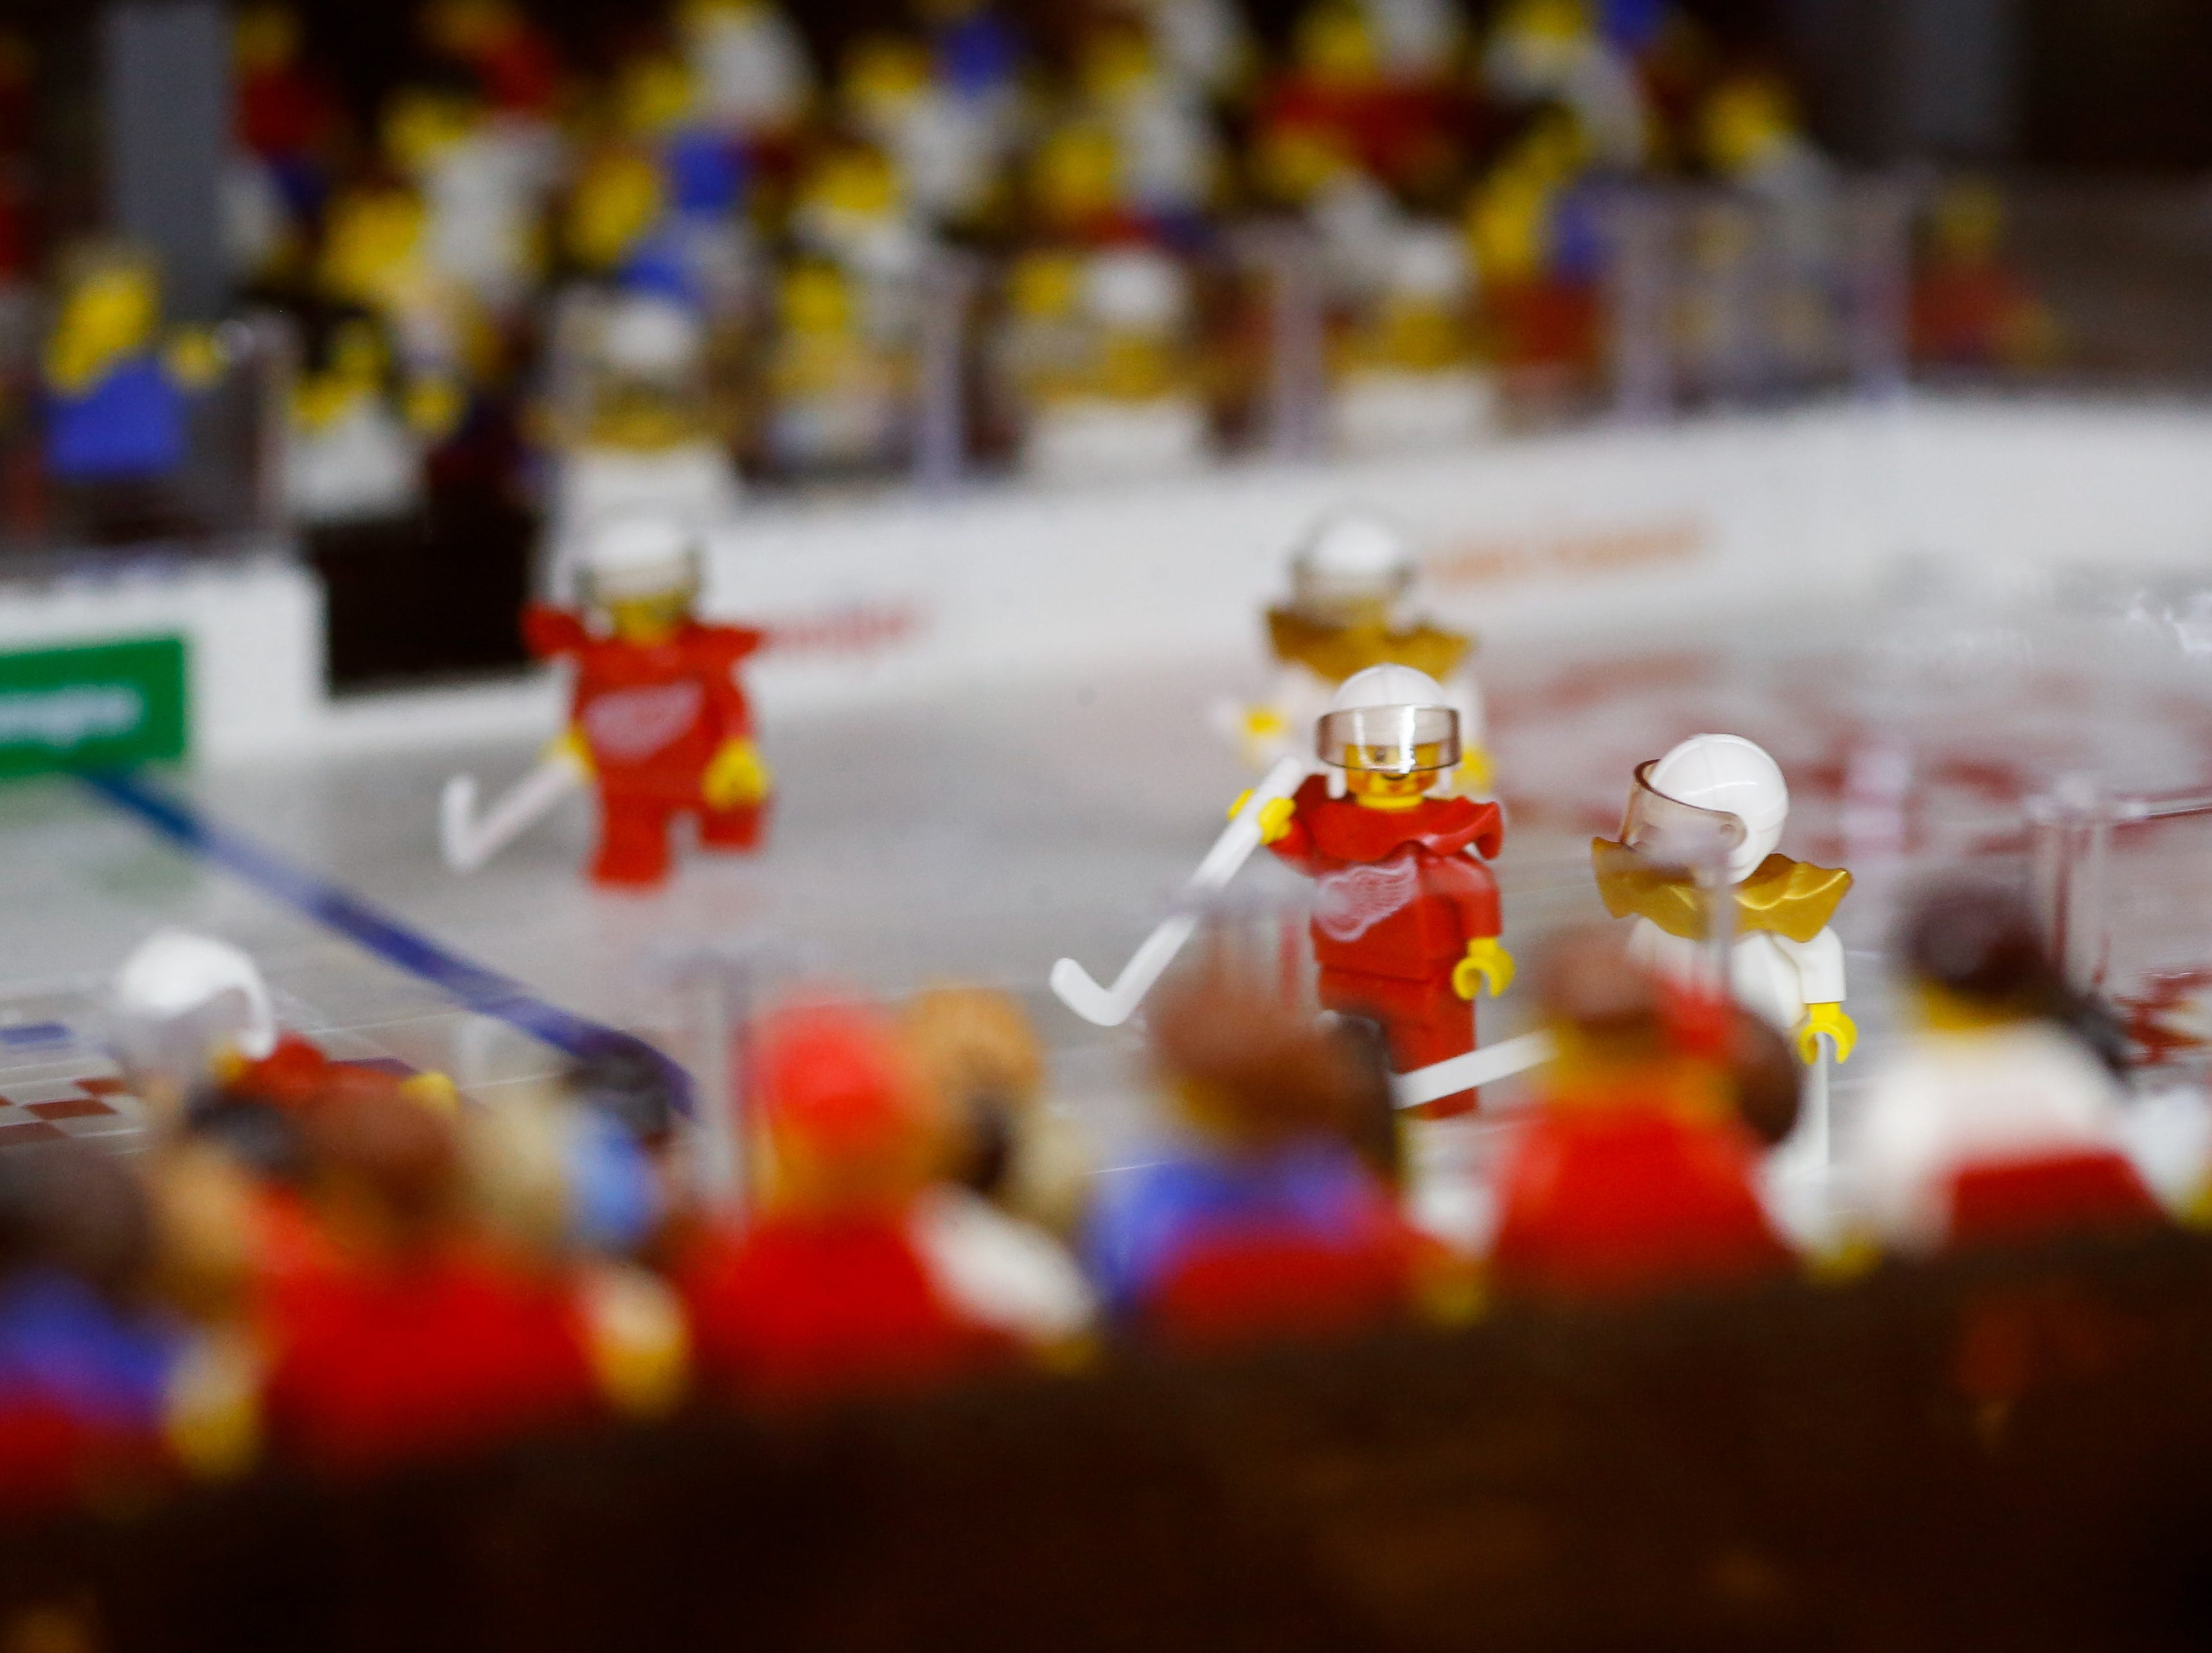 More LEGO action on the ice.